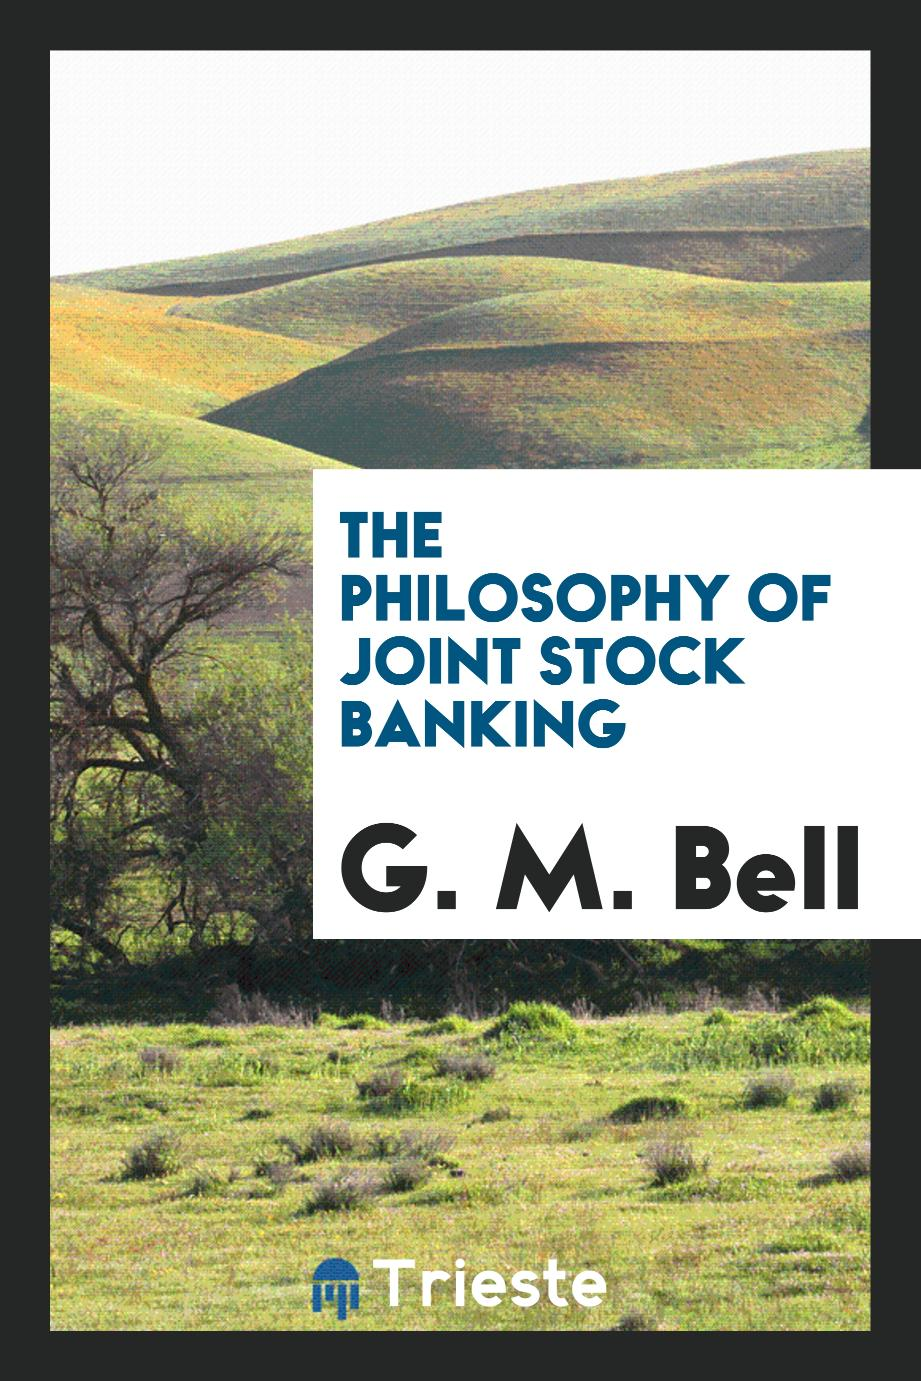 The Philosophy of Joint Stock Banking